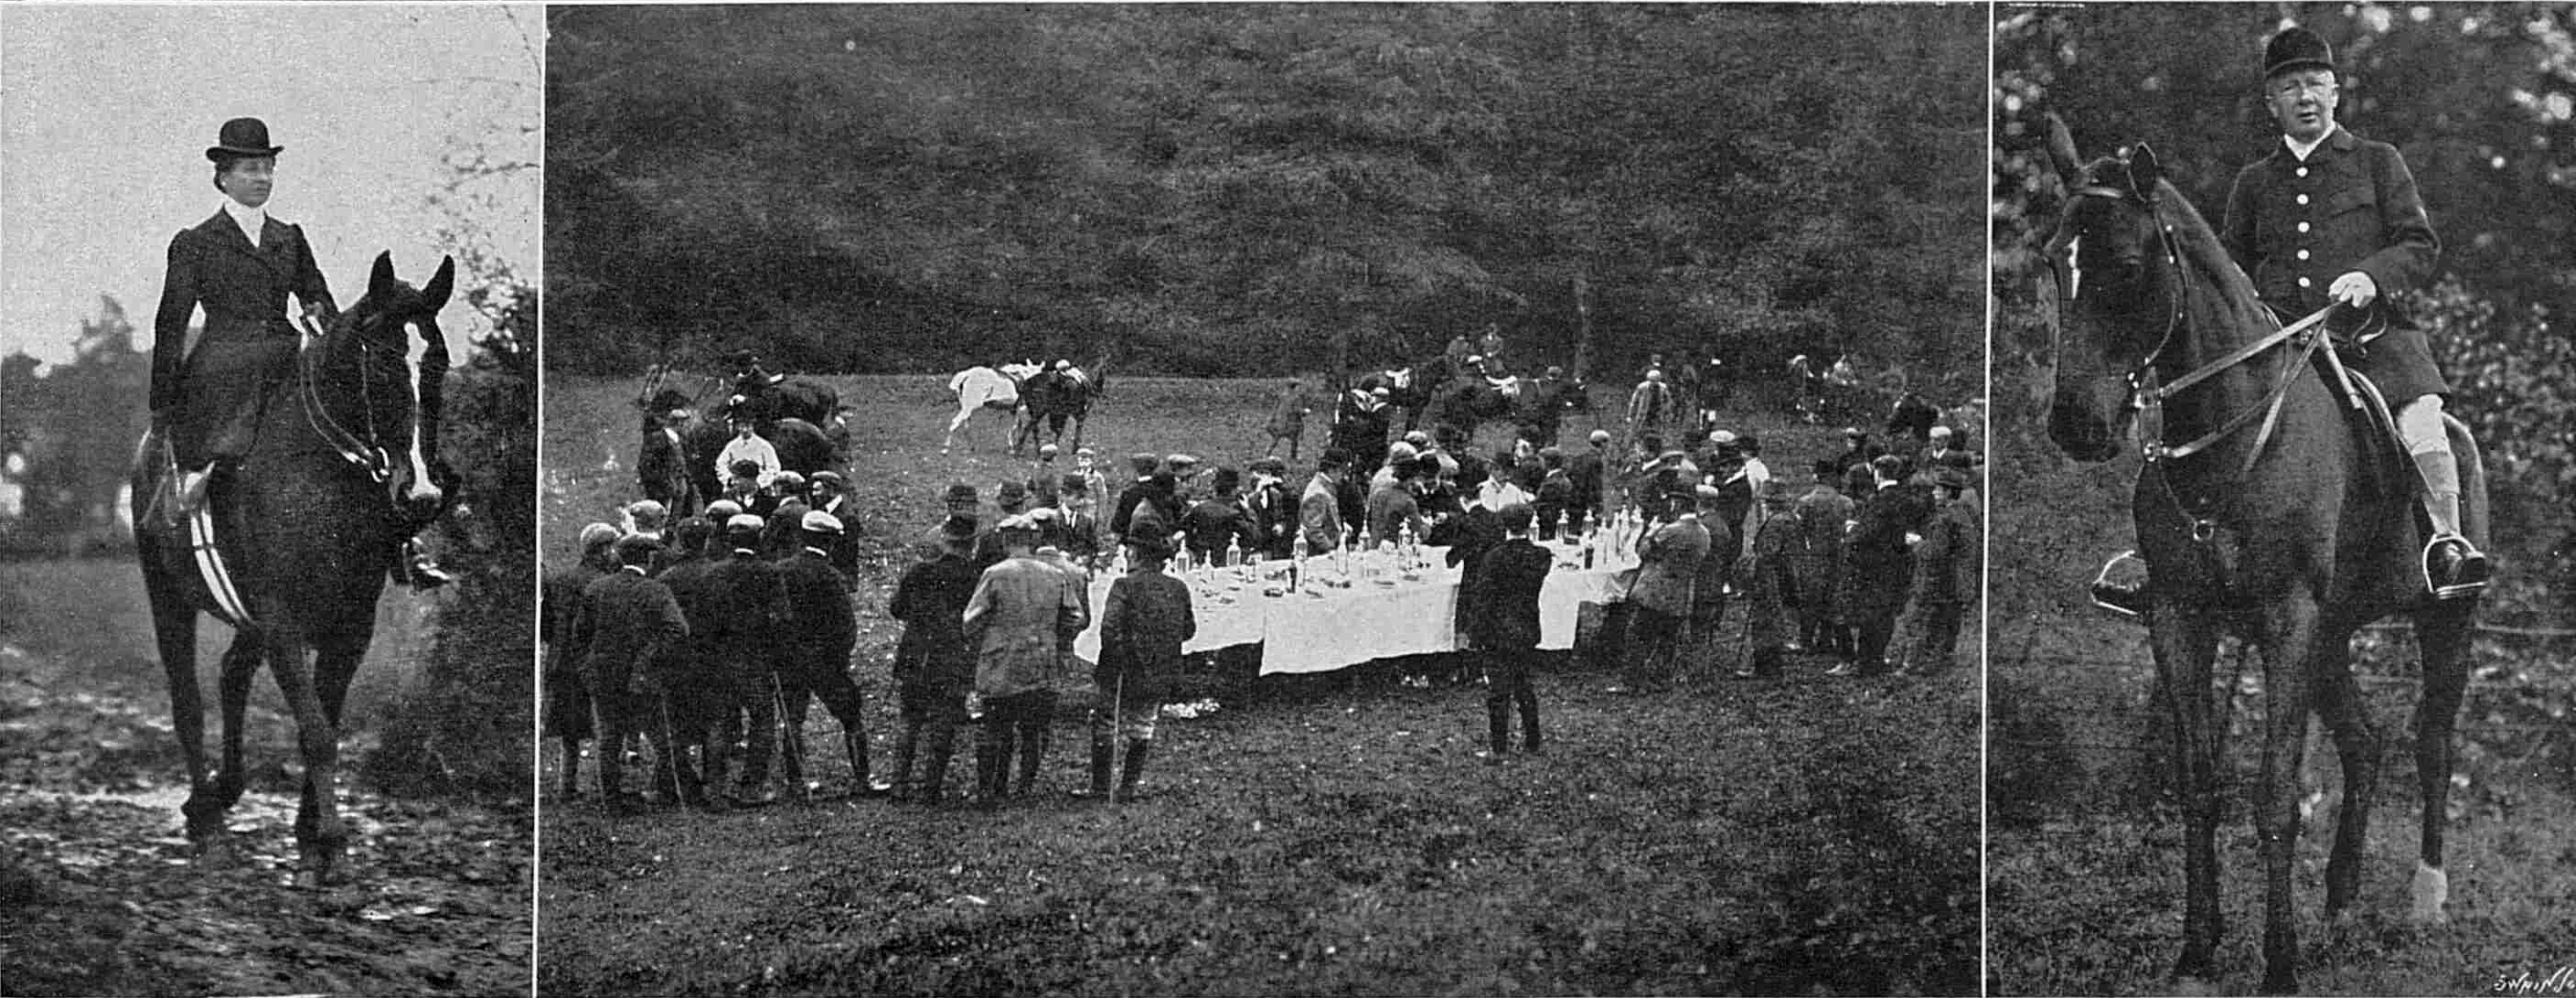 1909 opening of the Tetcott Hunt meet at Hornacott with Jane Shuker on the left and Charles on the right.